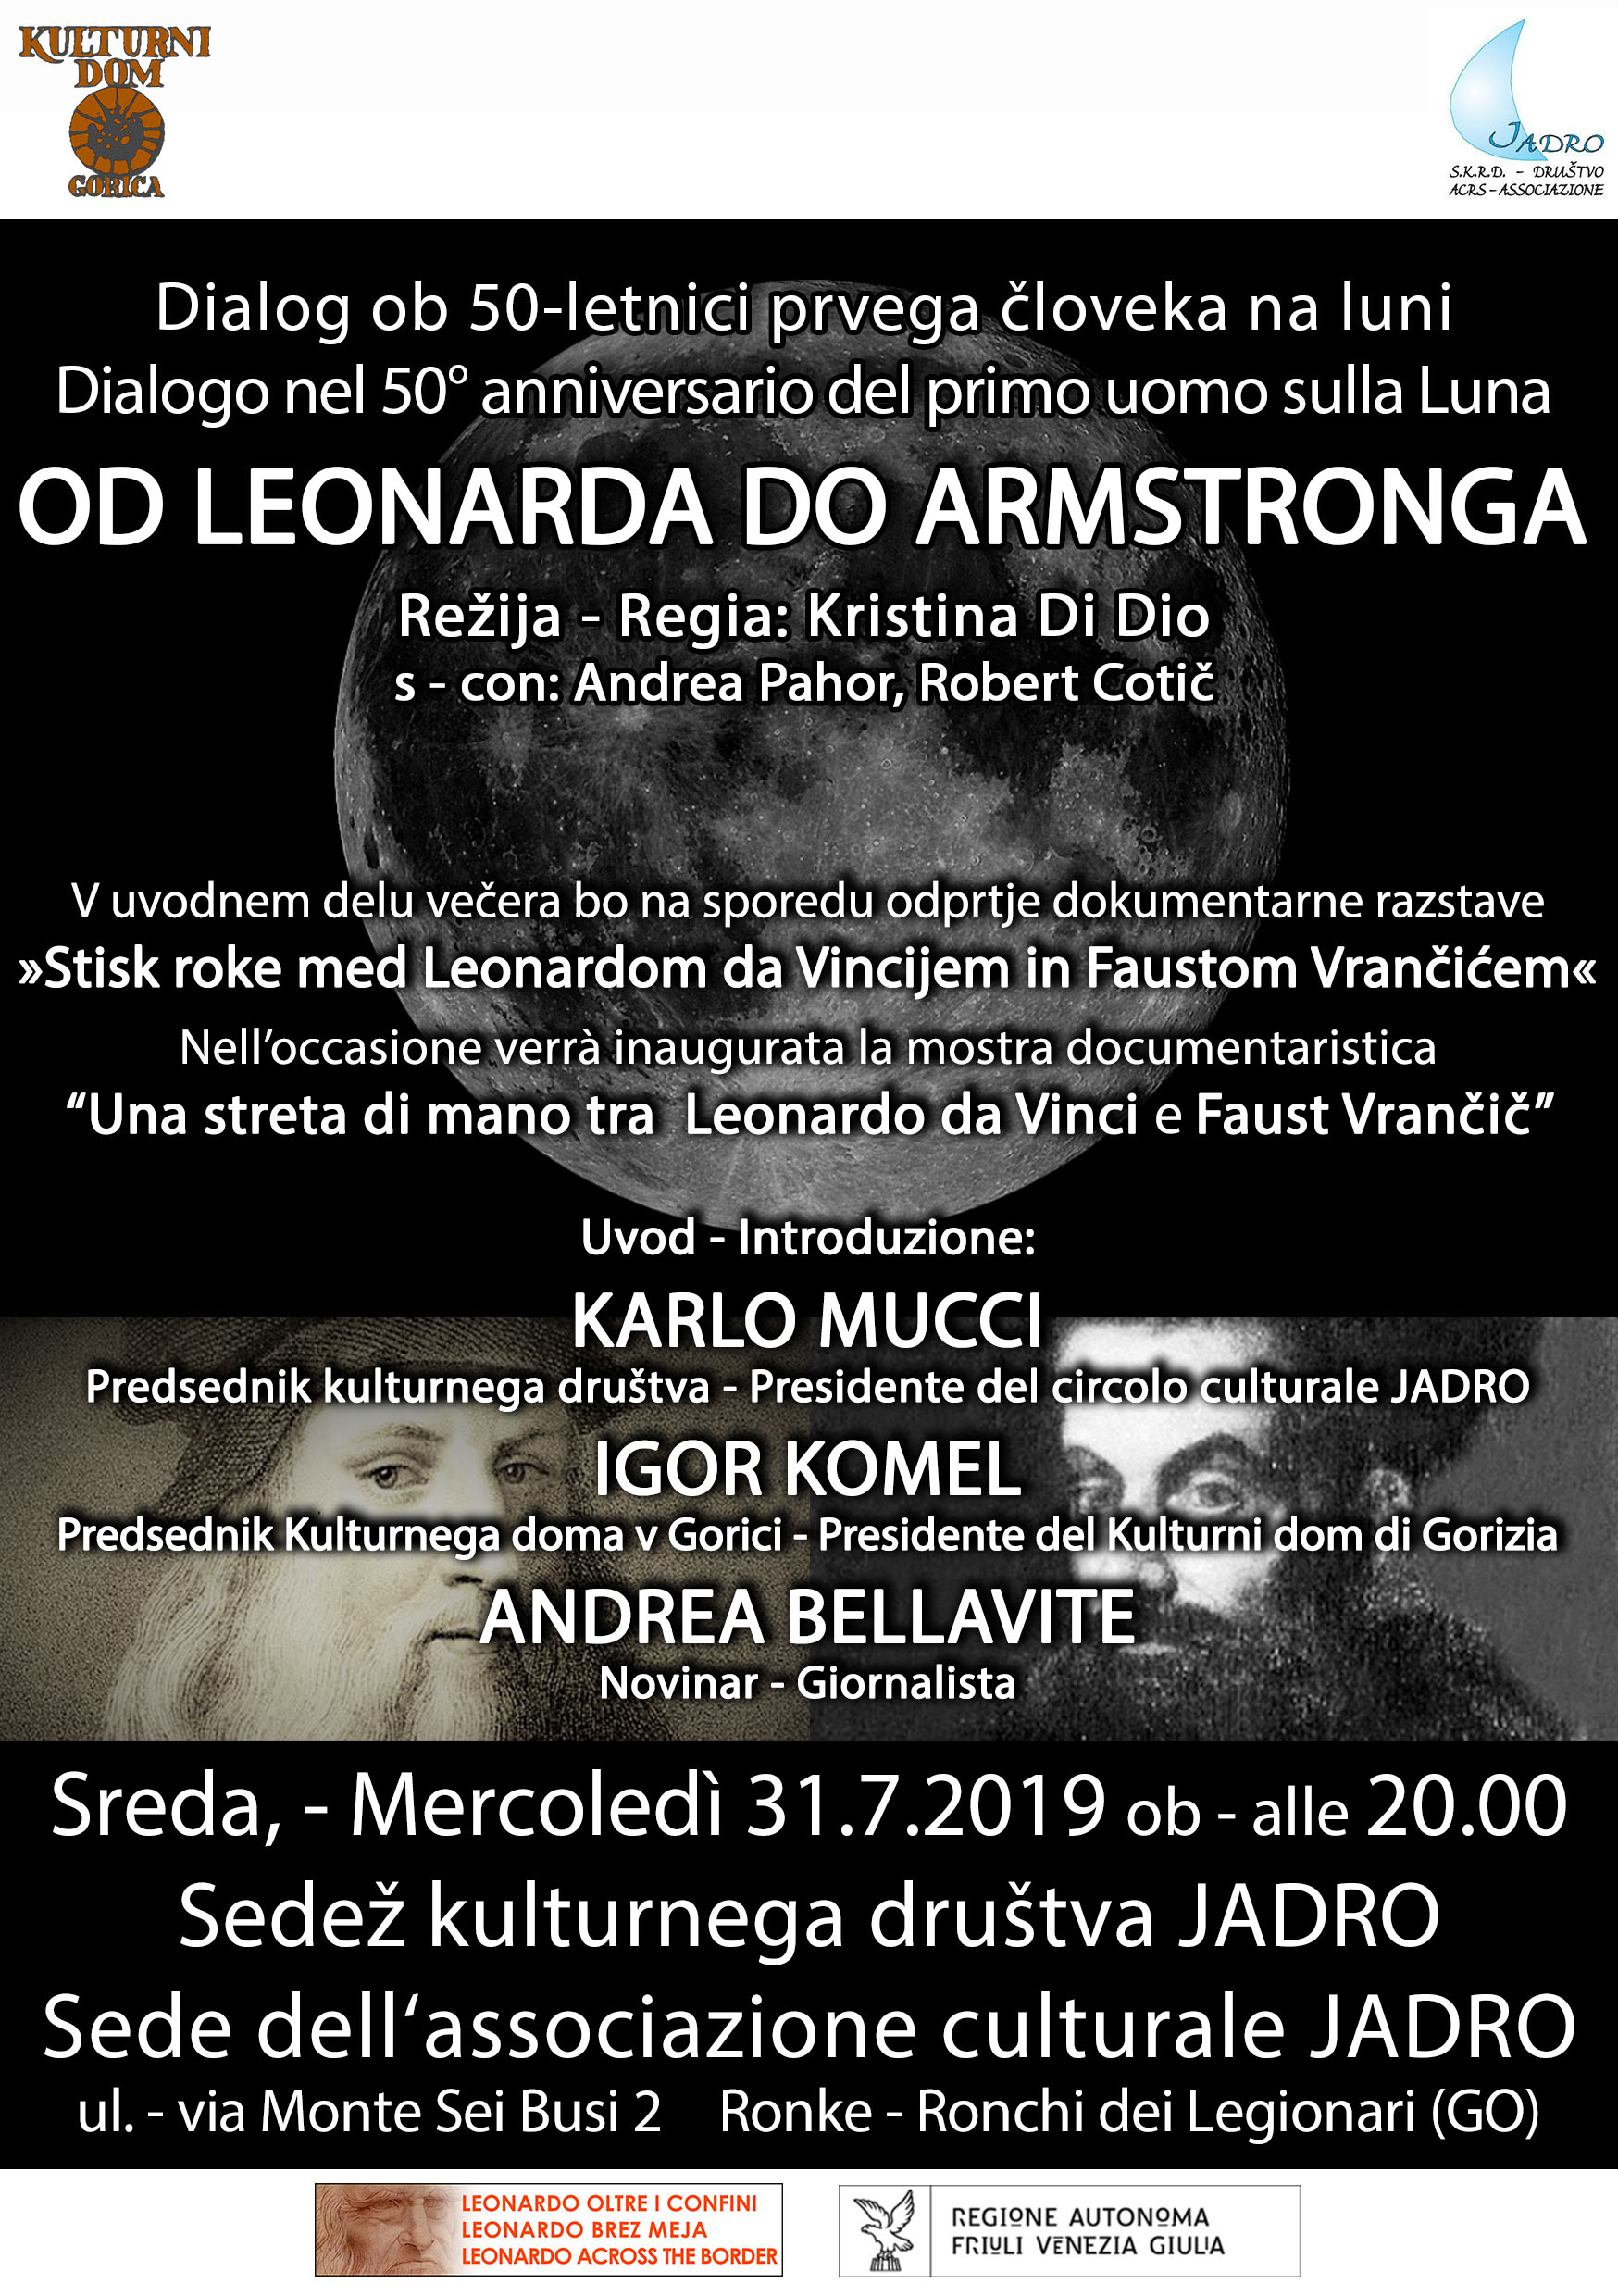 OD LEONARDA DO ARMSTRONGA